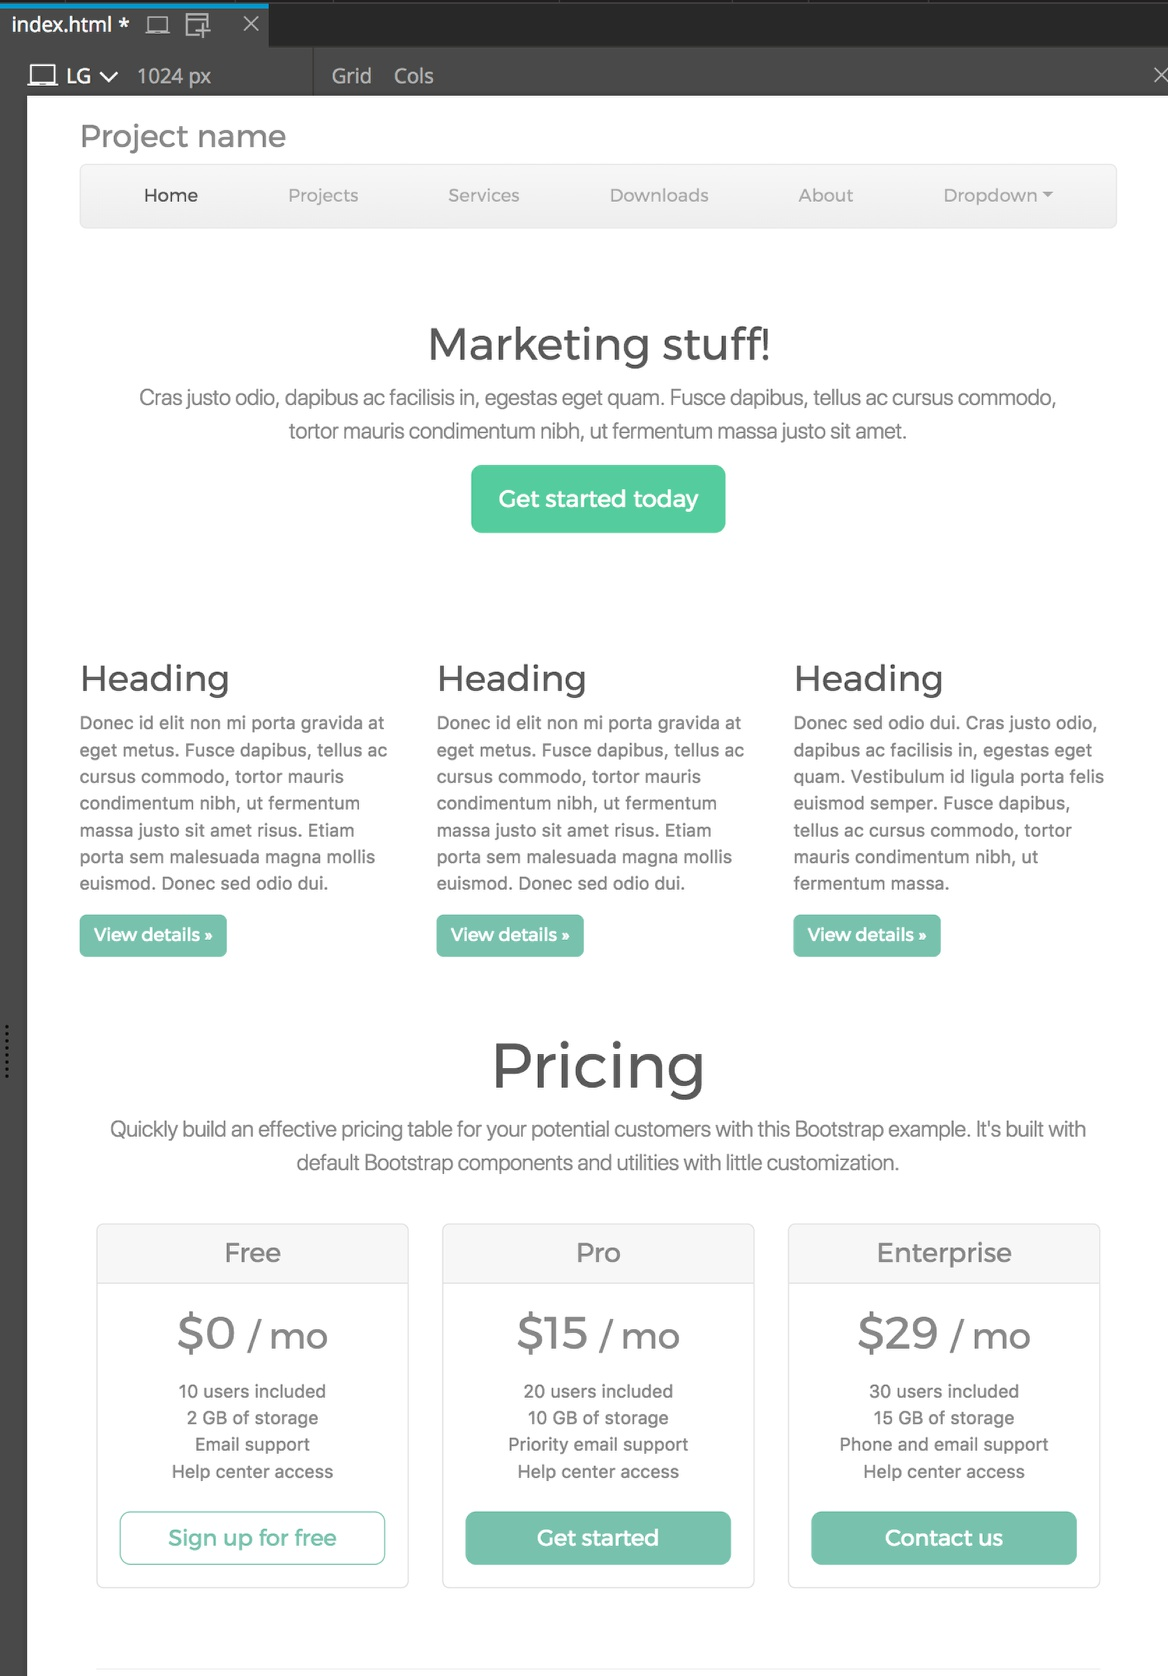 Screenshot of the Pinegrow Bootstrap 4 page with Minty styling